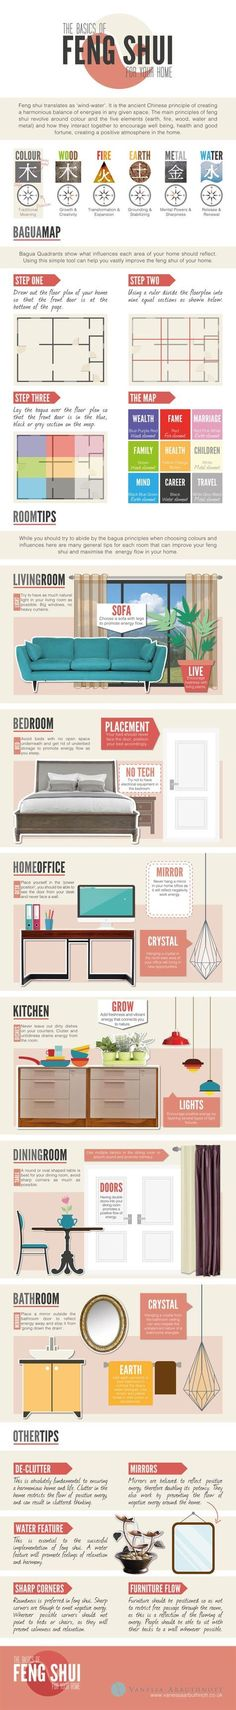 Feng Shui, Feng Shui for the home, Feng Shui guide, Feng Shui infographic, infographic, reader submission, home decor, decorating, home decoration tips, furniture placement, basic feng shui